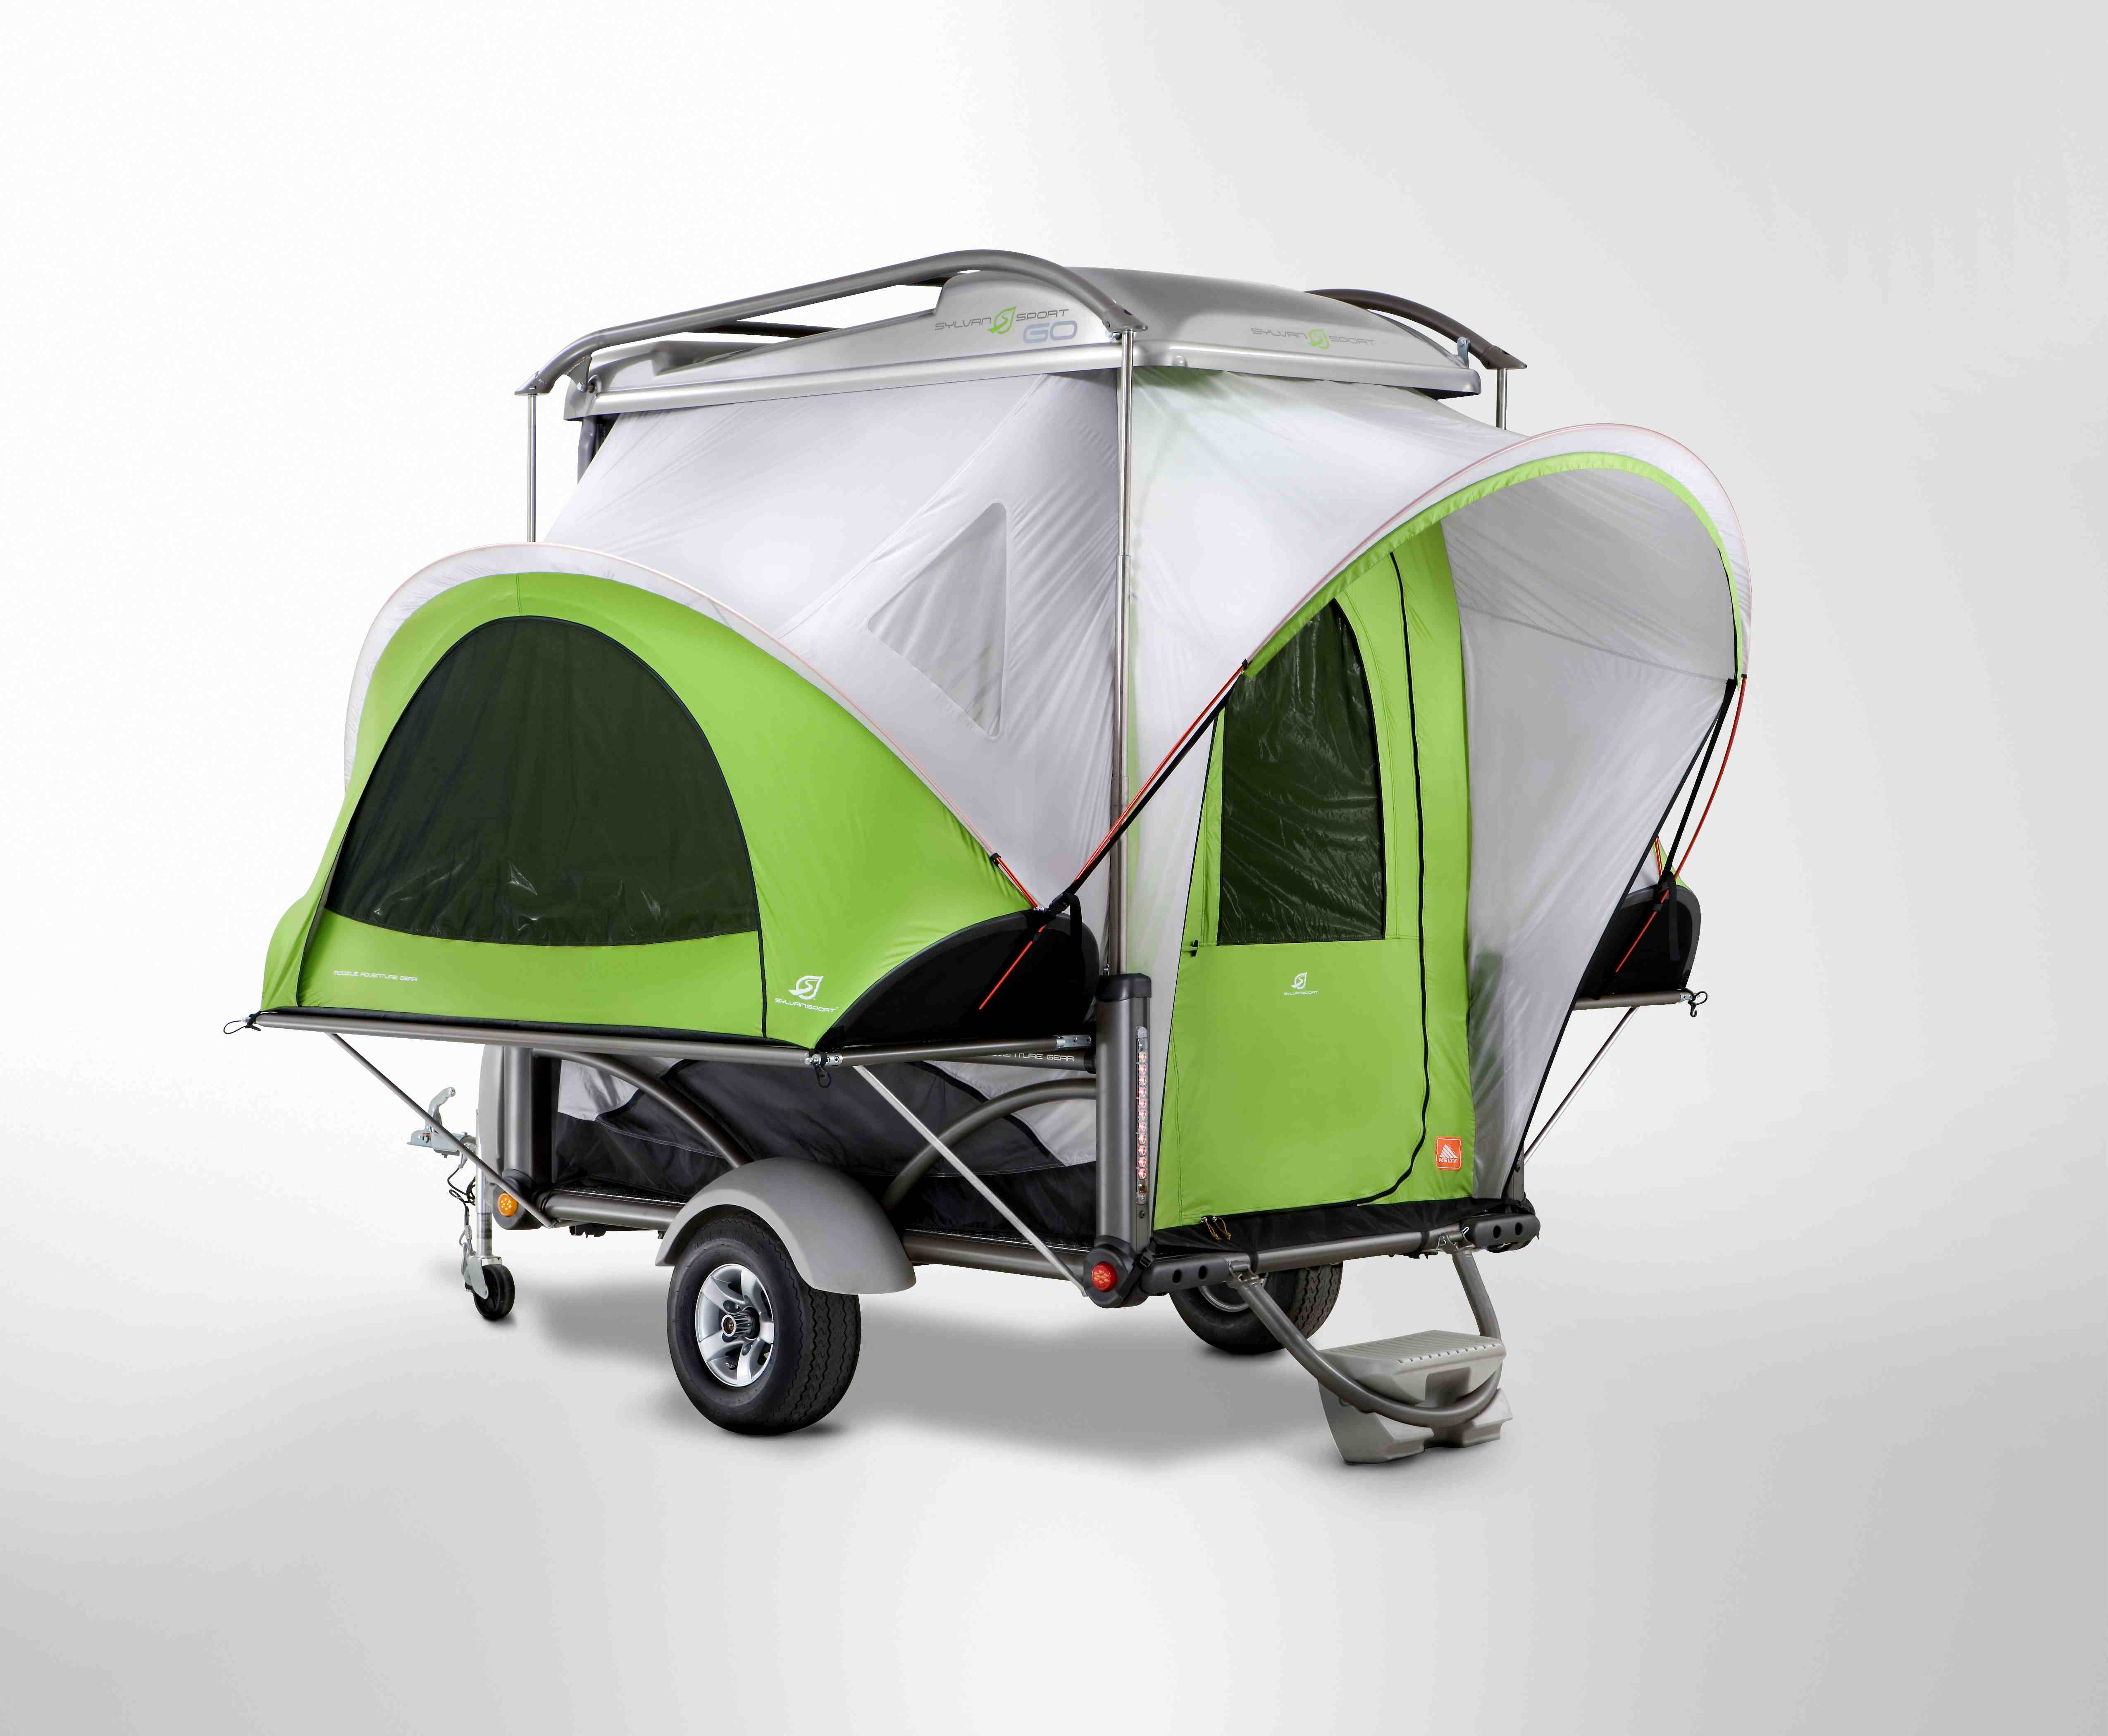 The SylvanSport GO with tent